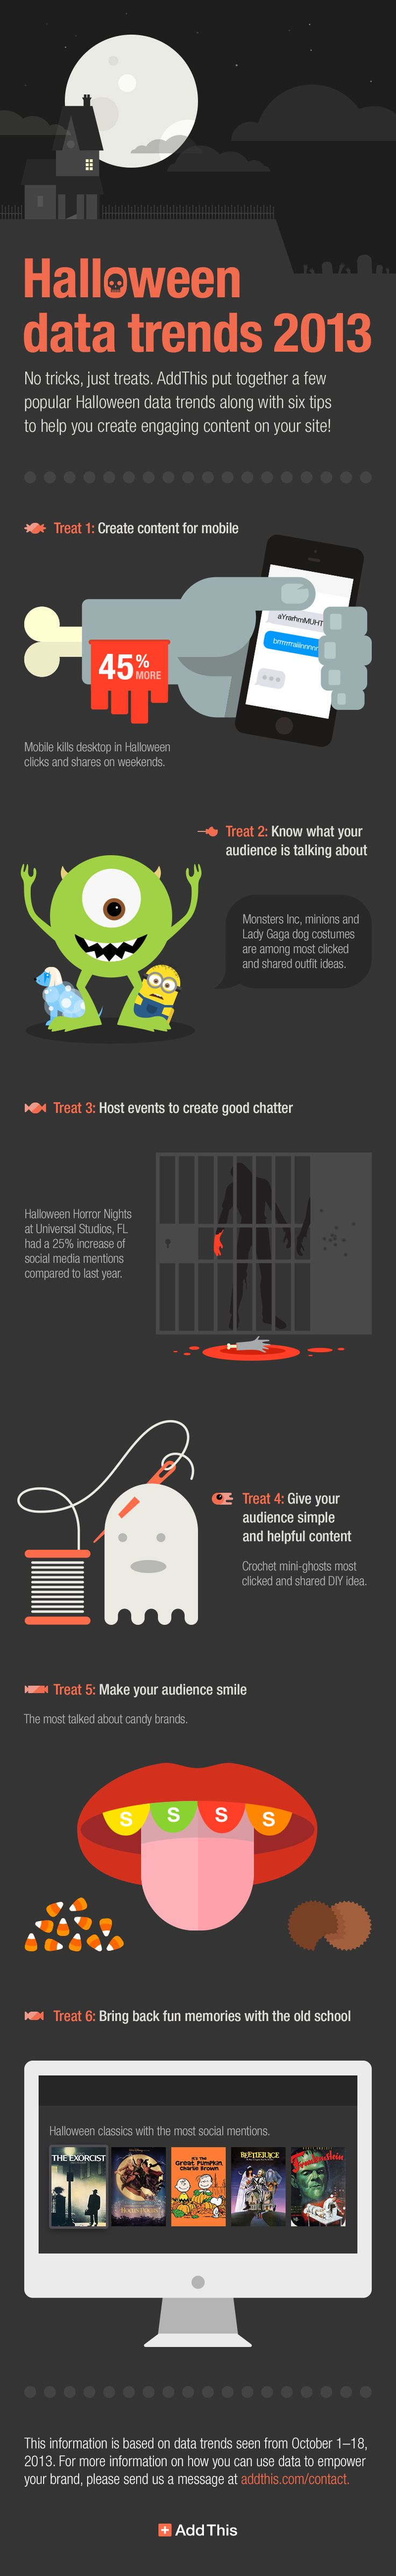 6 Lessons We Learned from Halloween Data Trends [INFOGRAPHIC] #content #contentmarketing